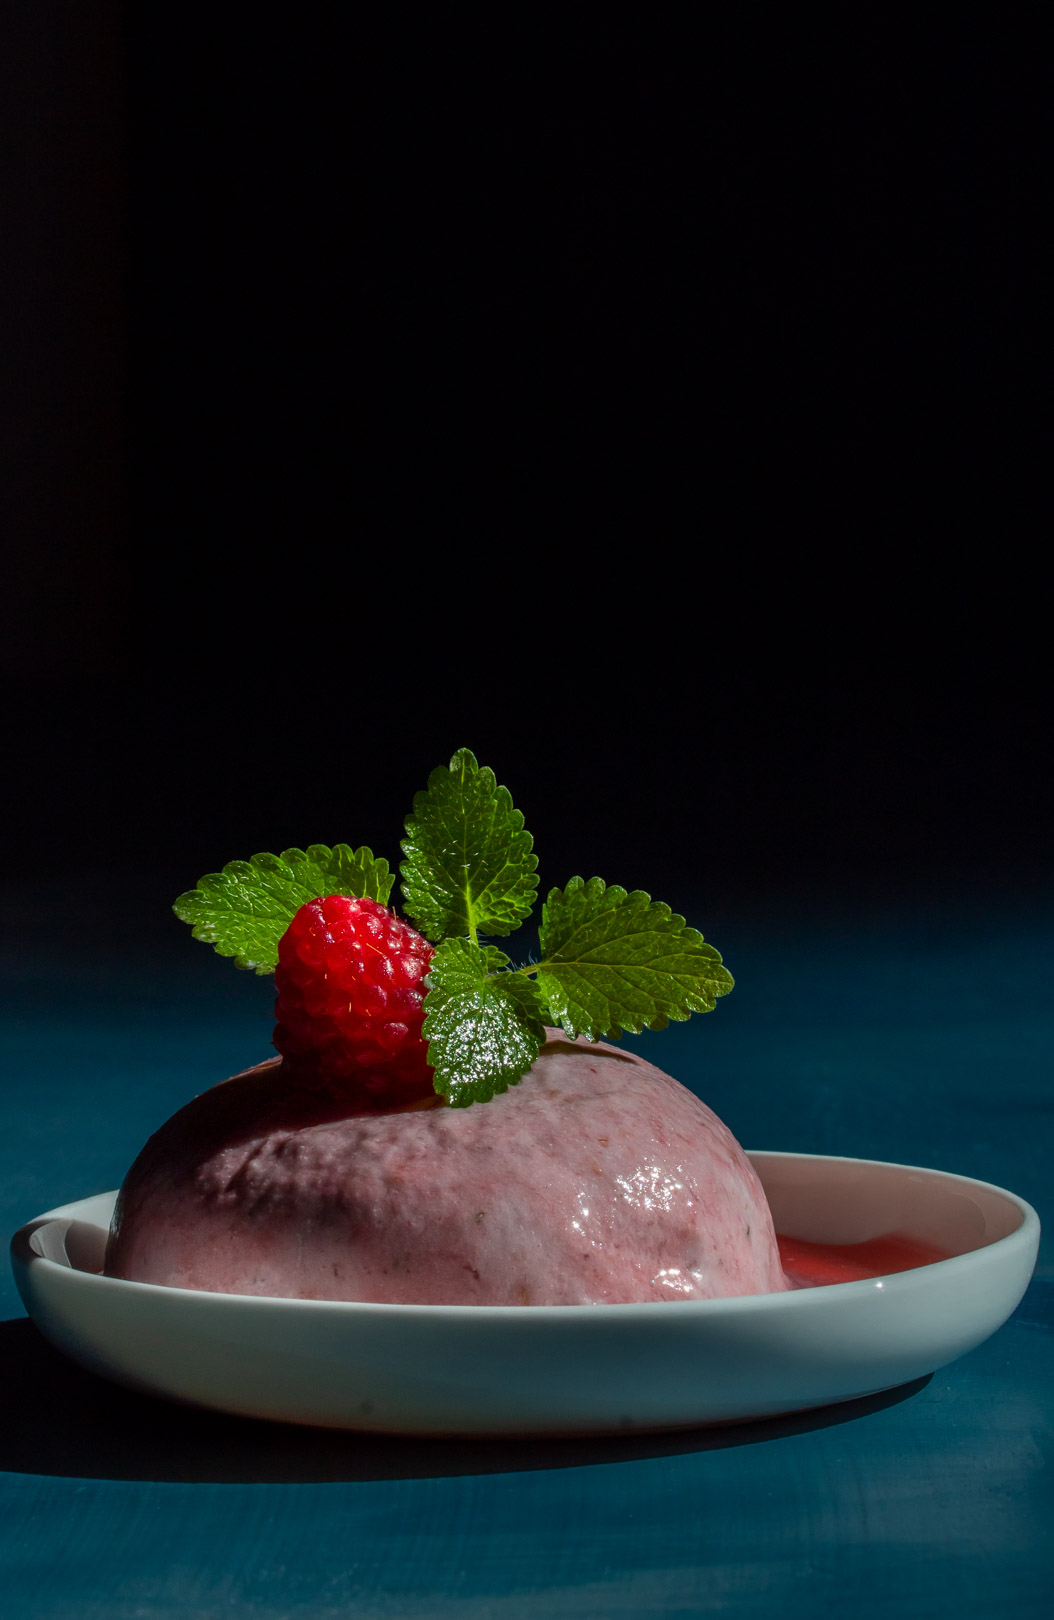 Ice cream made from Raspberry shrub drinking syrup leftovers